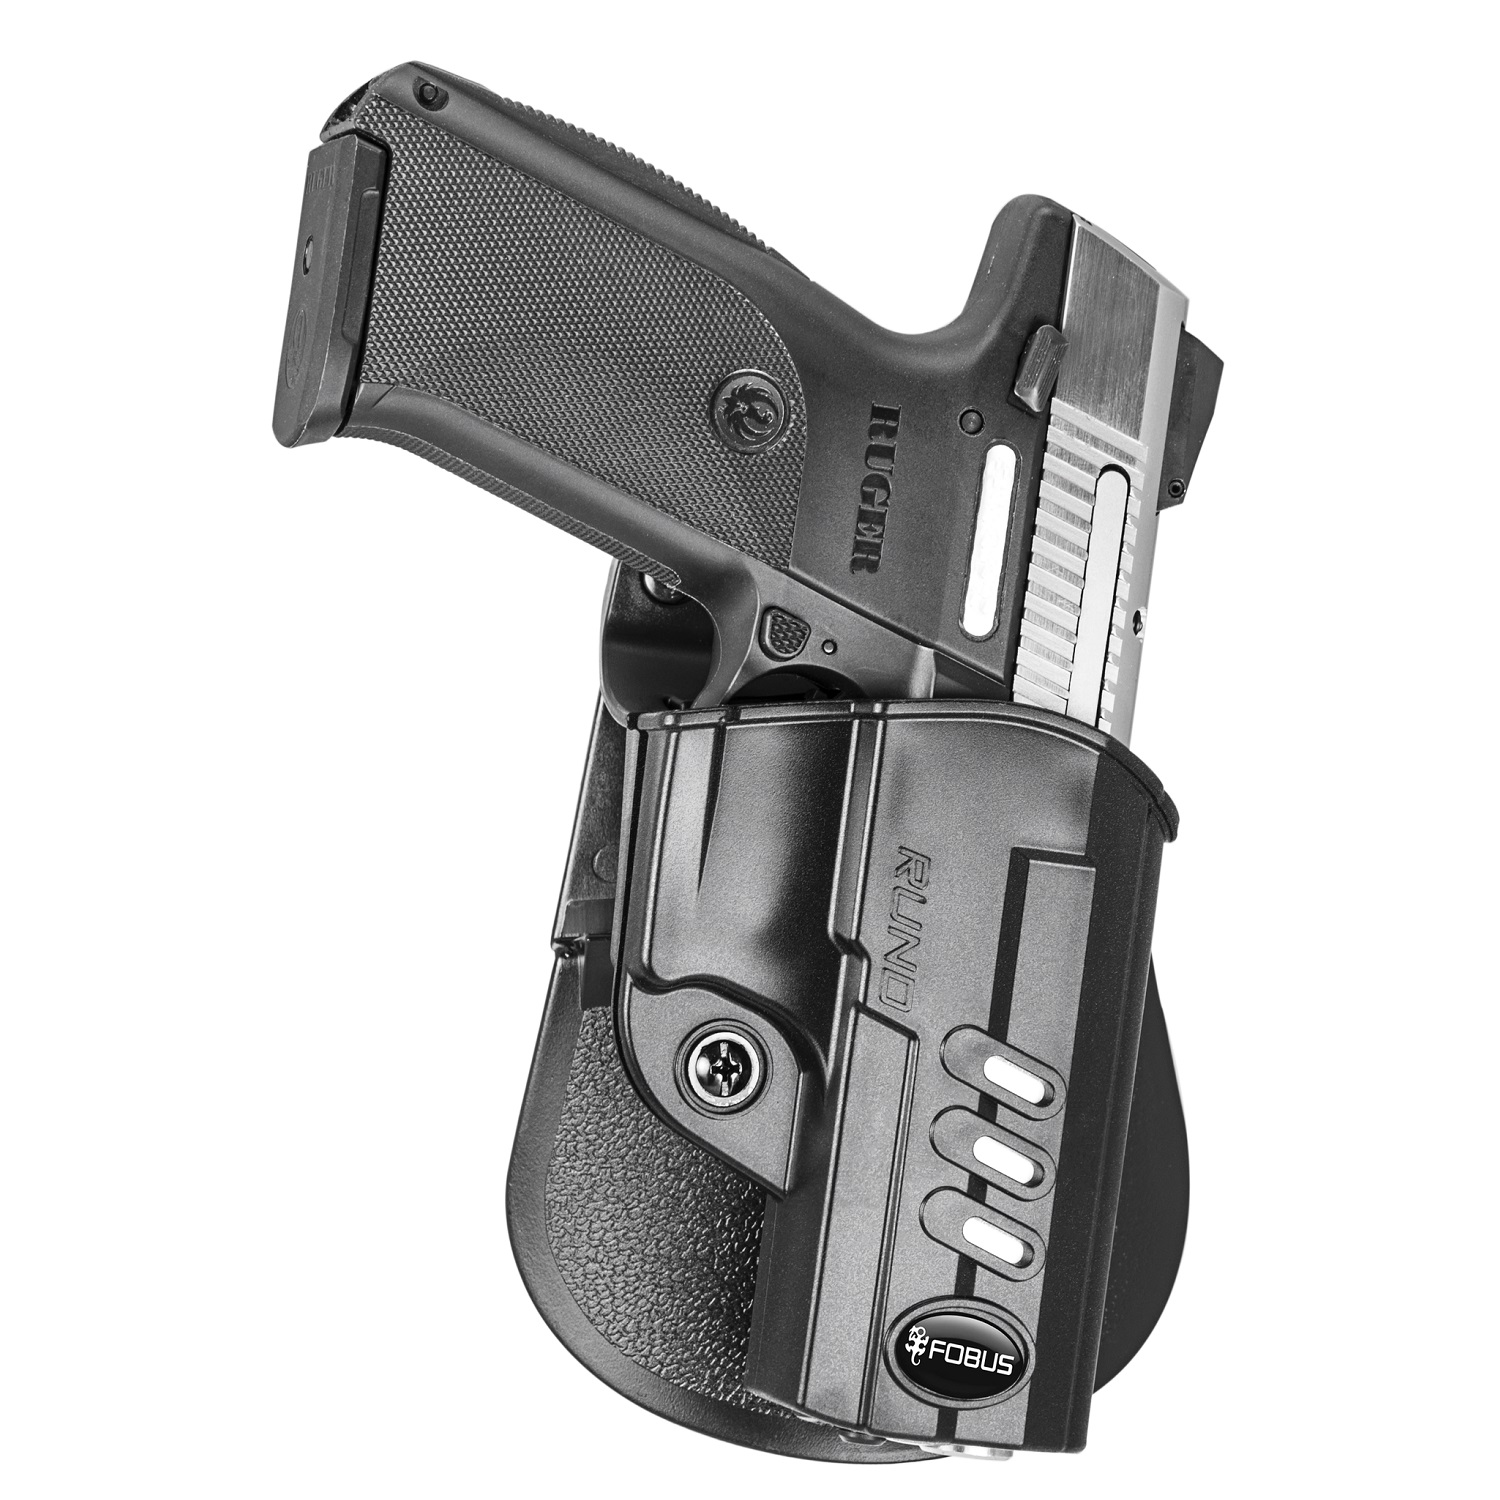 Fobus Evolution Paddle Holster-Ruger SR40 SR40C SR9-SR9C by Fobus Holsters